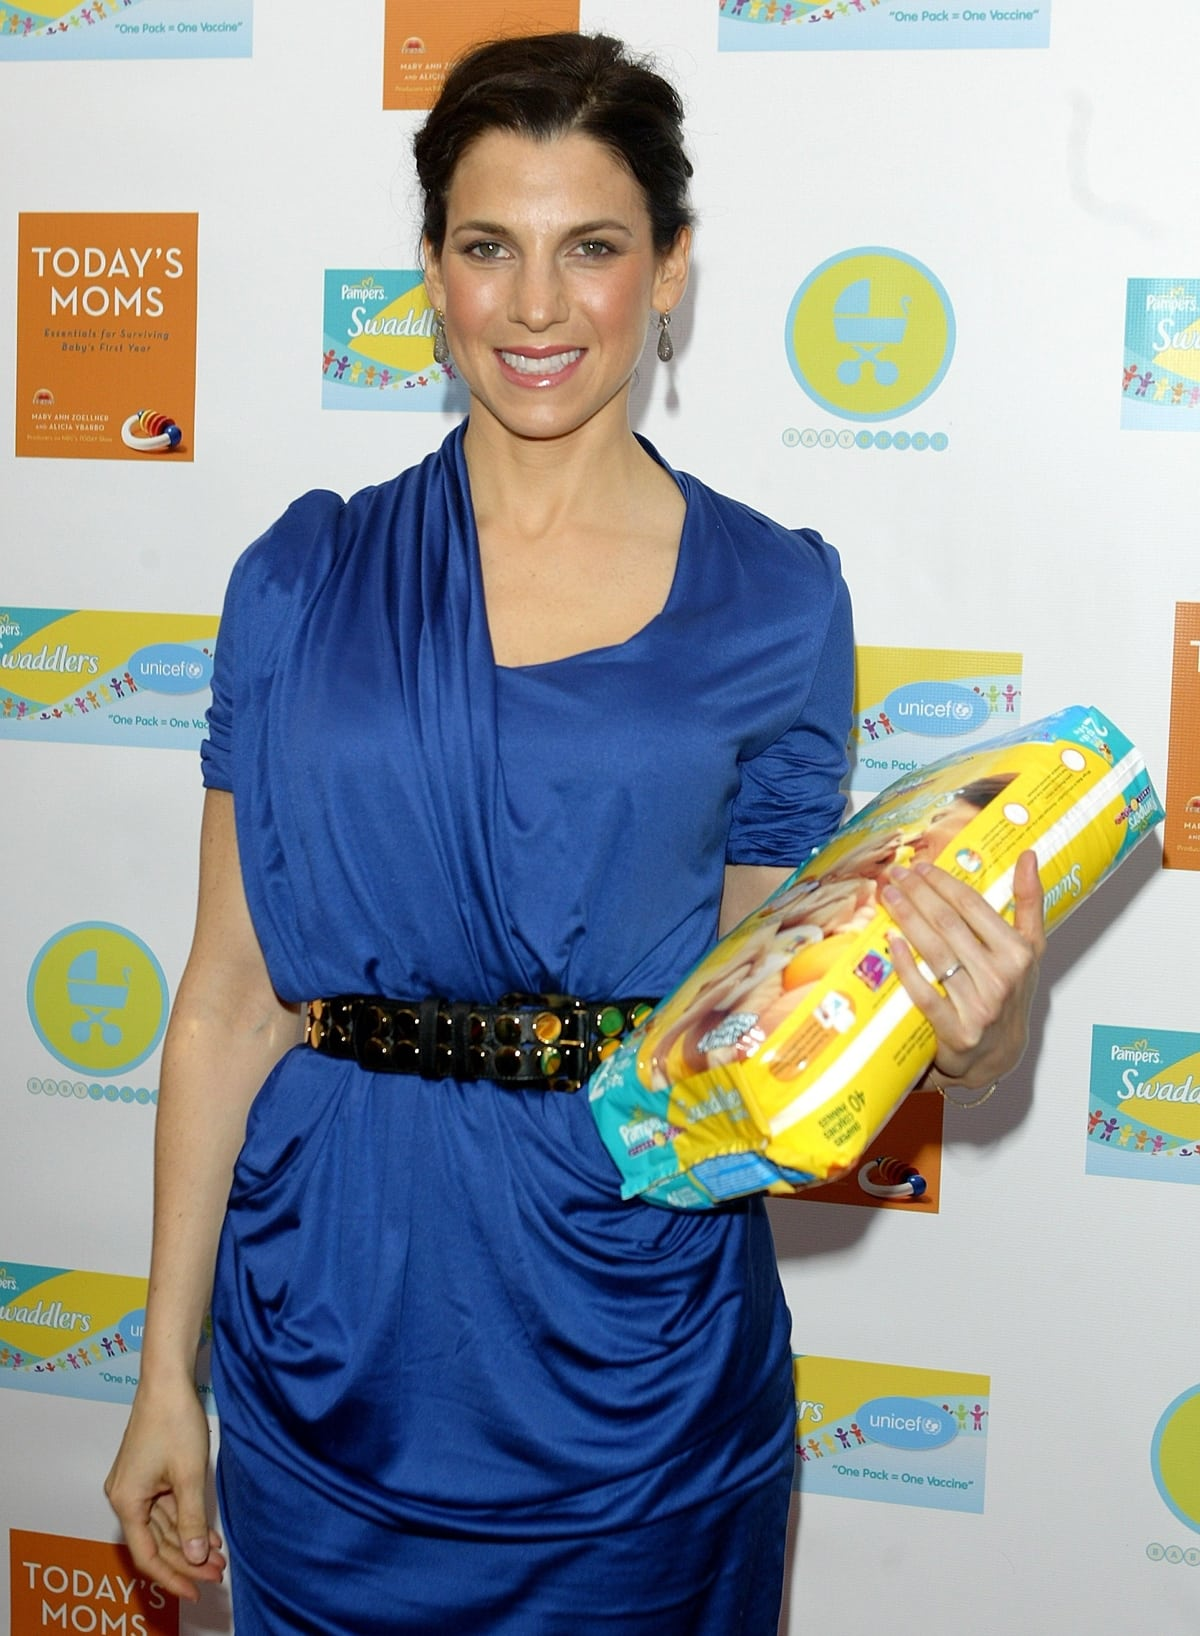 """Jessica Seinfeld promotes """"Today's Moms - Essentials for Surviving Baby's First Year"""""""